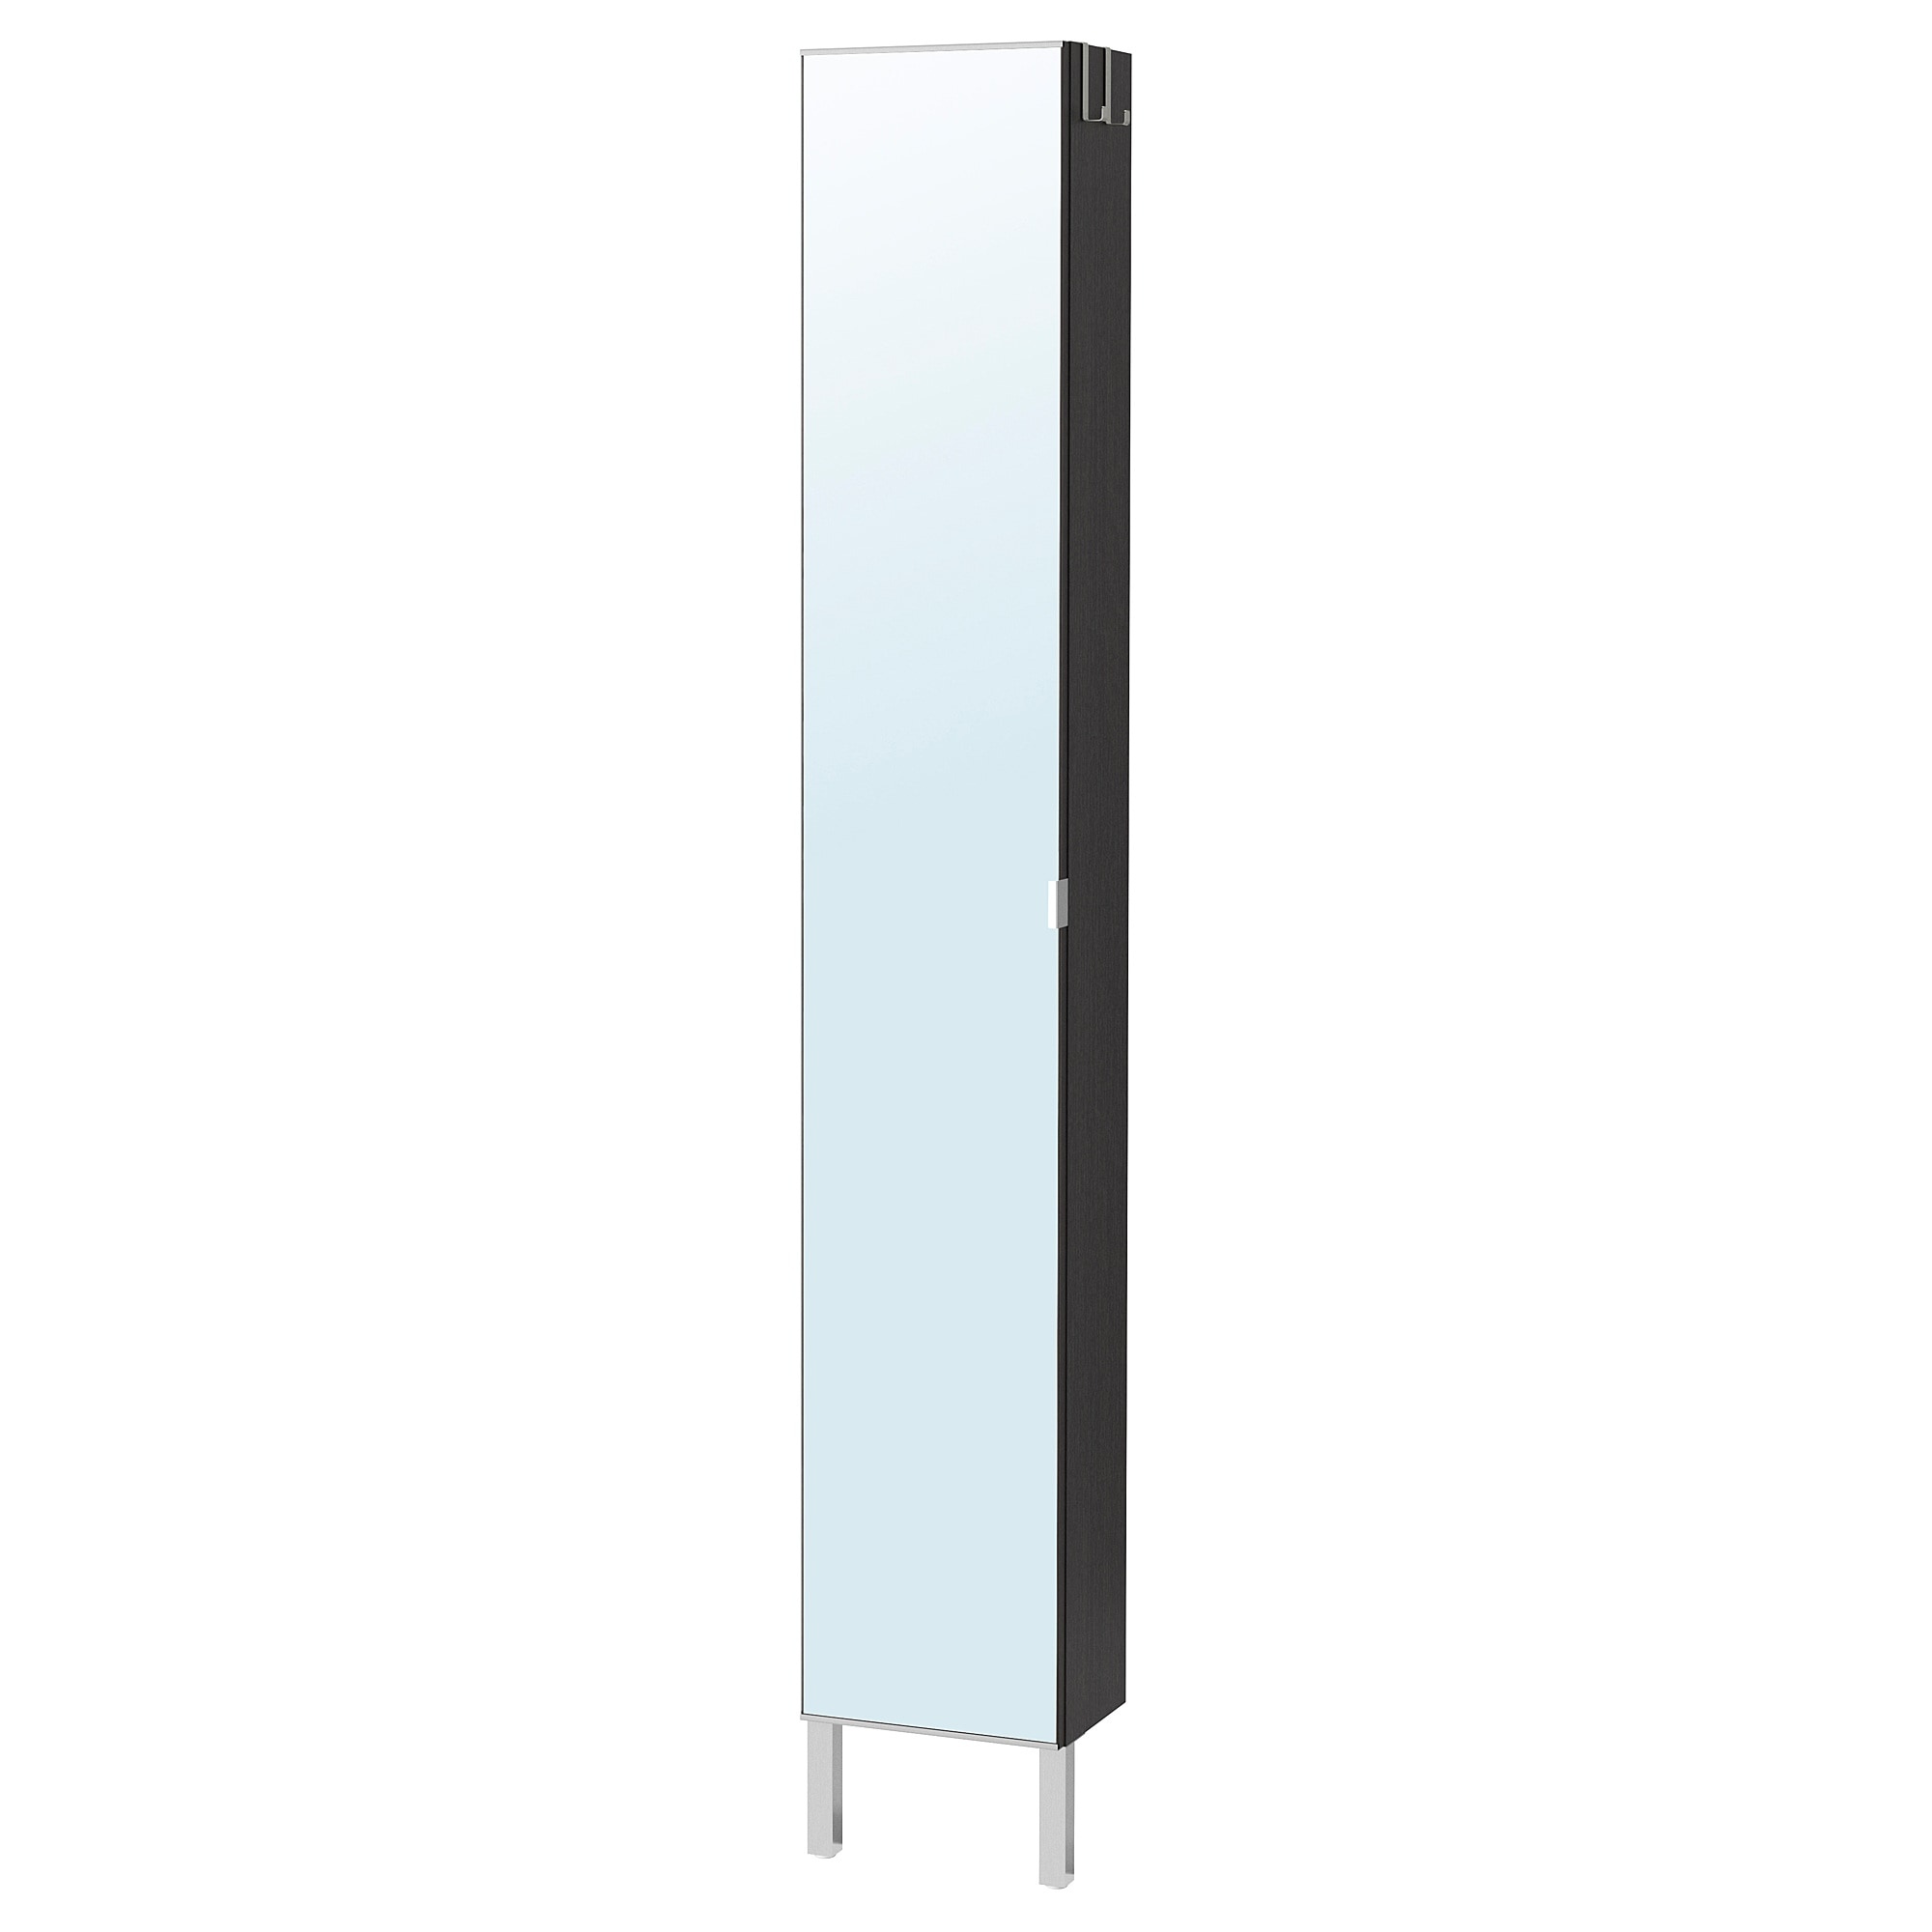 lill ngen high cabinet with mirror door stainless steel black rh ikea com mirrored corner tall bathroom cabinet tall mirrored bathroom cabinet argos